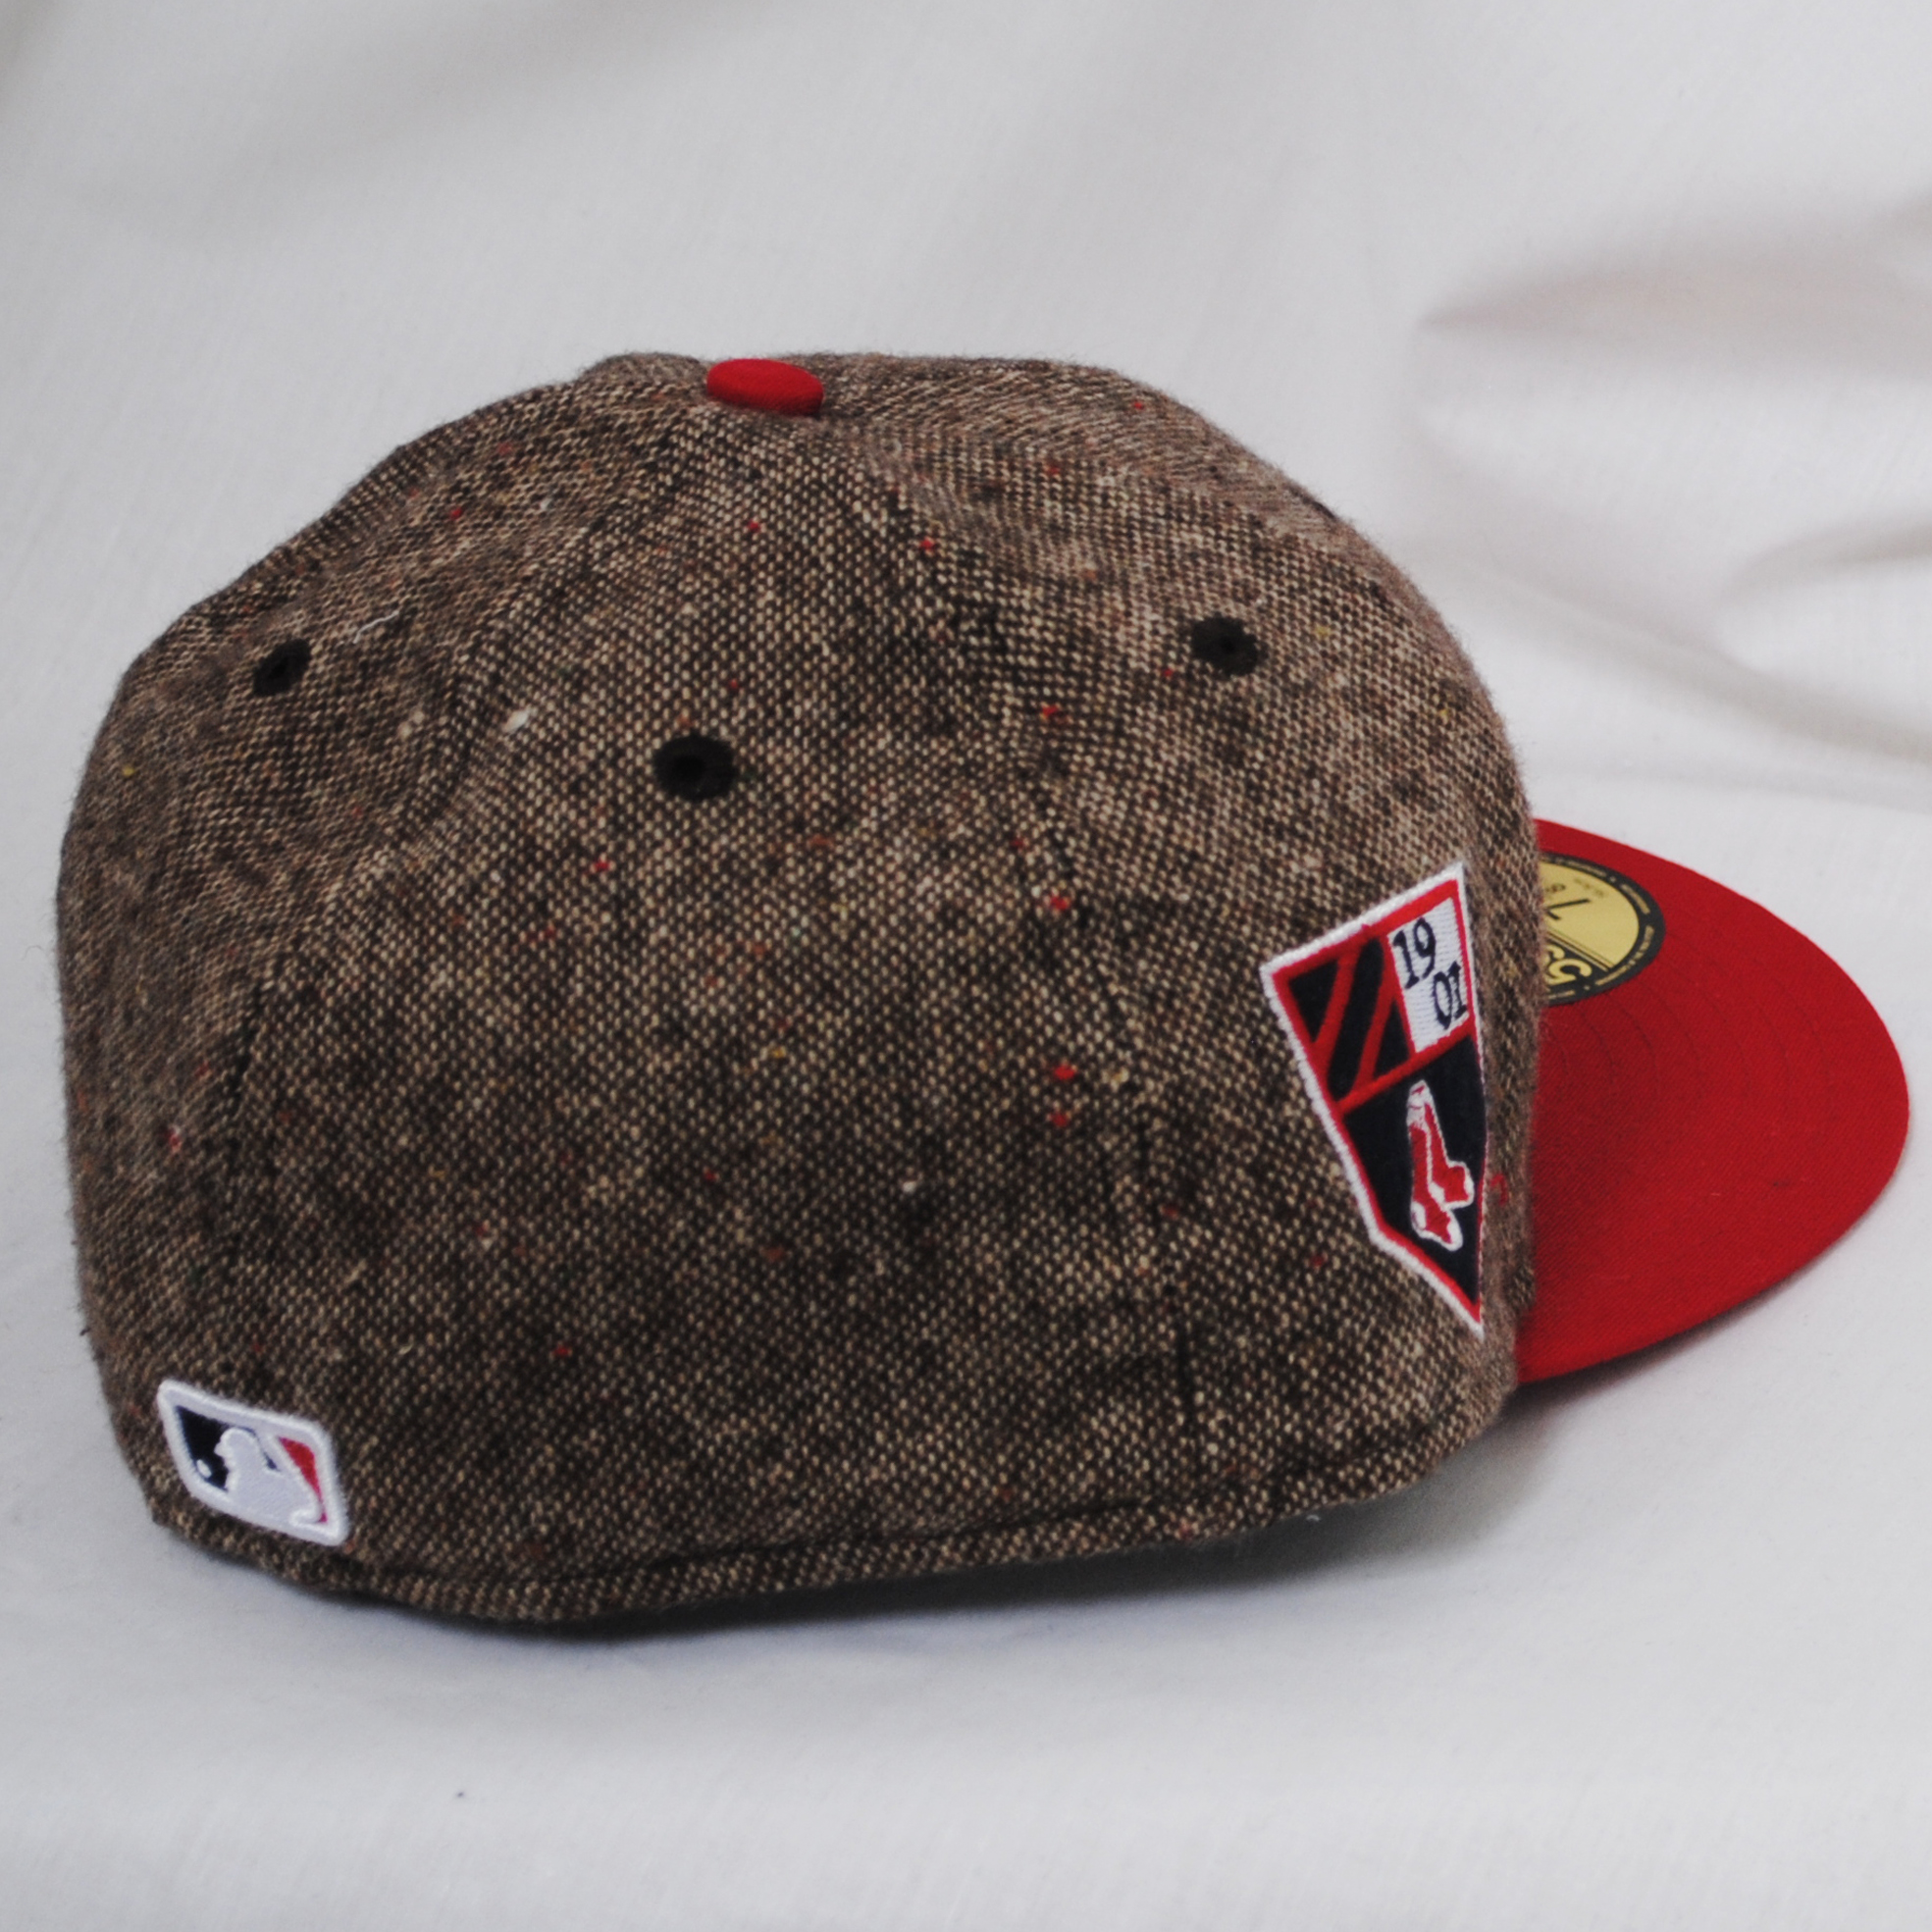 d0272afab1f ... new era 59fifty tweed boston red sox fitted cap hat brown red ...